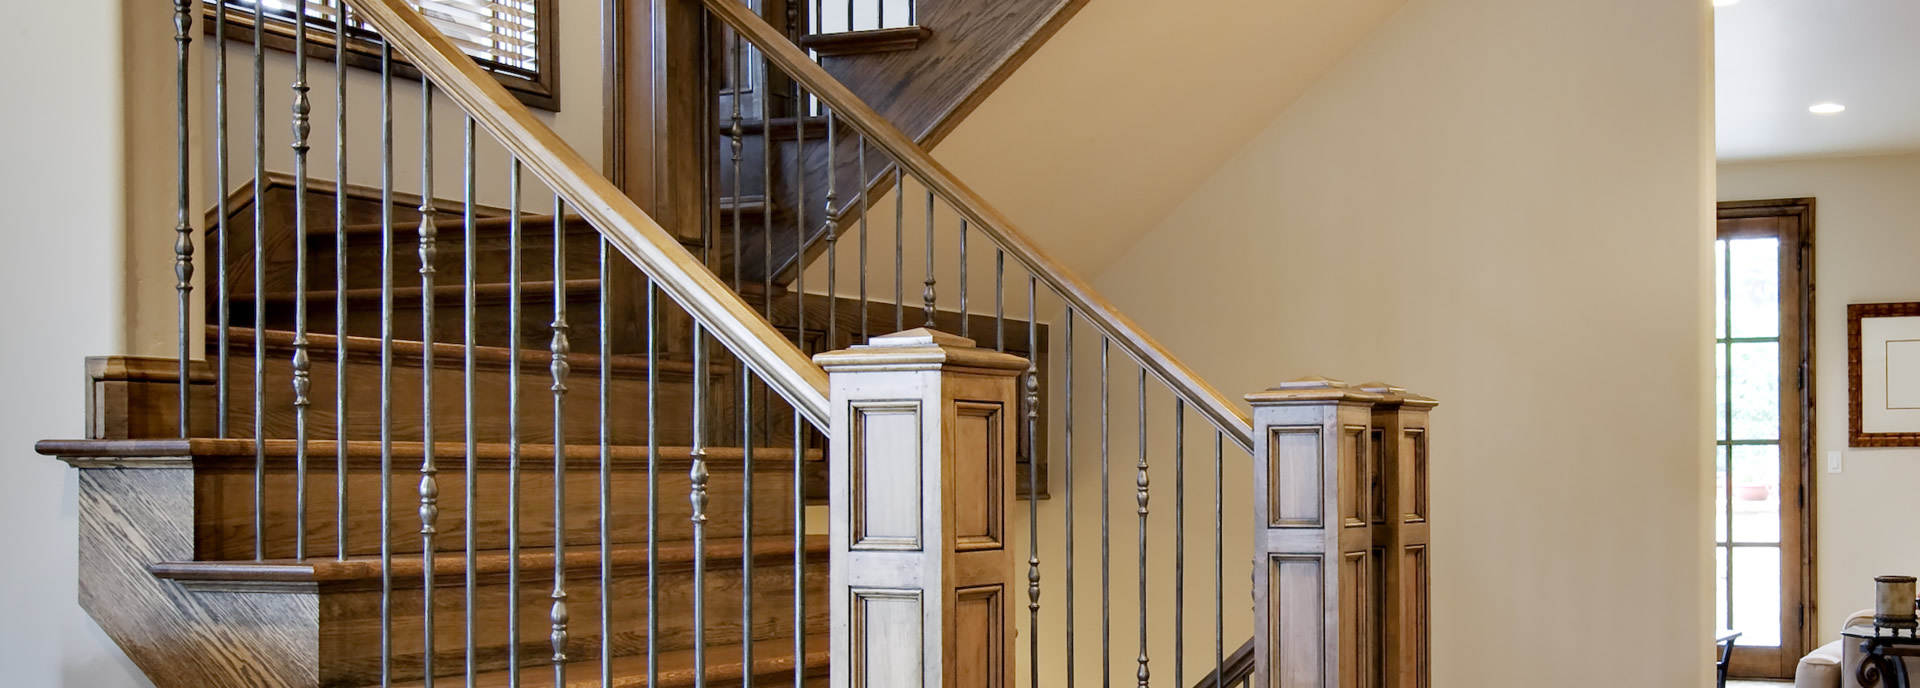 Cable Railing Systems Alpharetta, GA